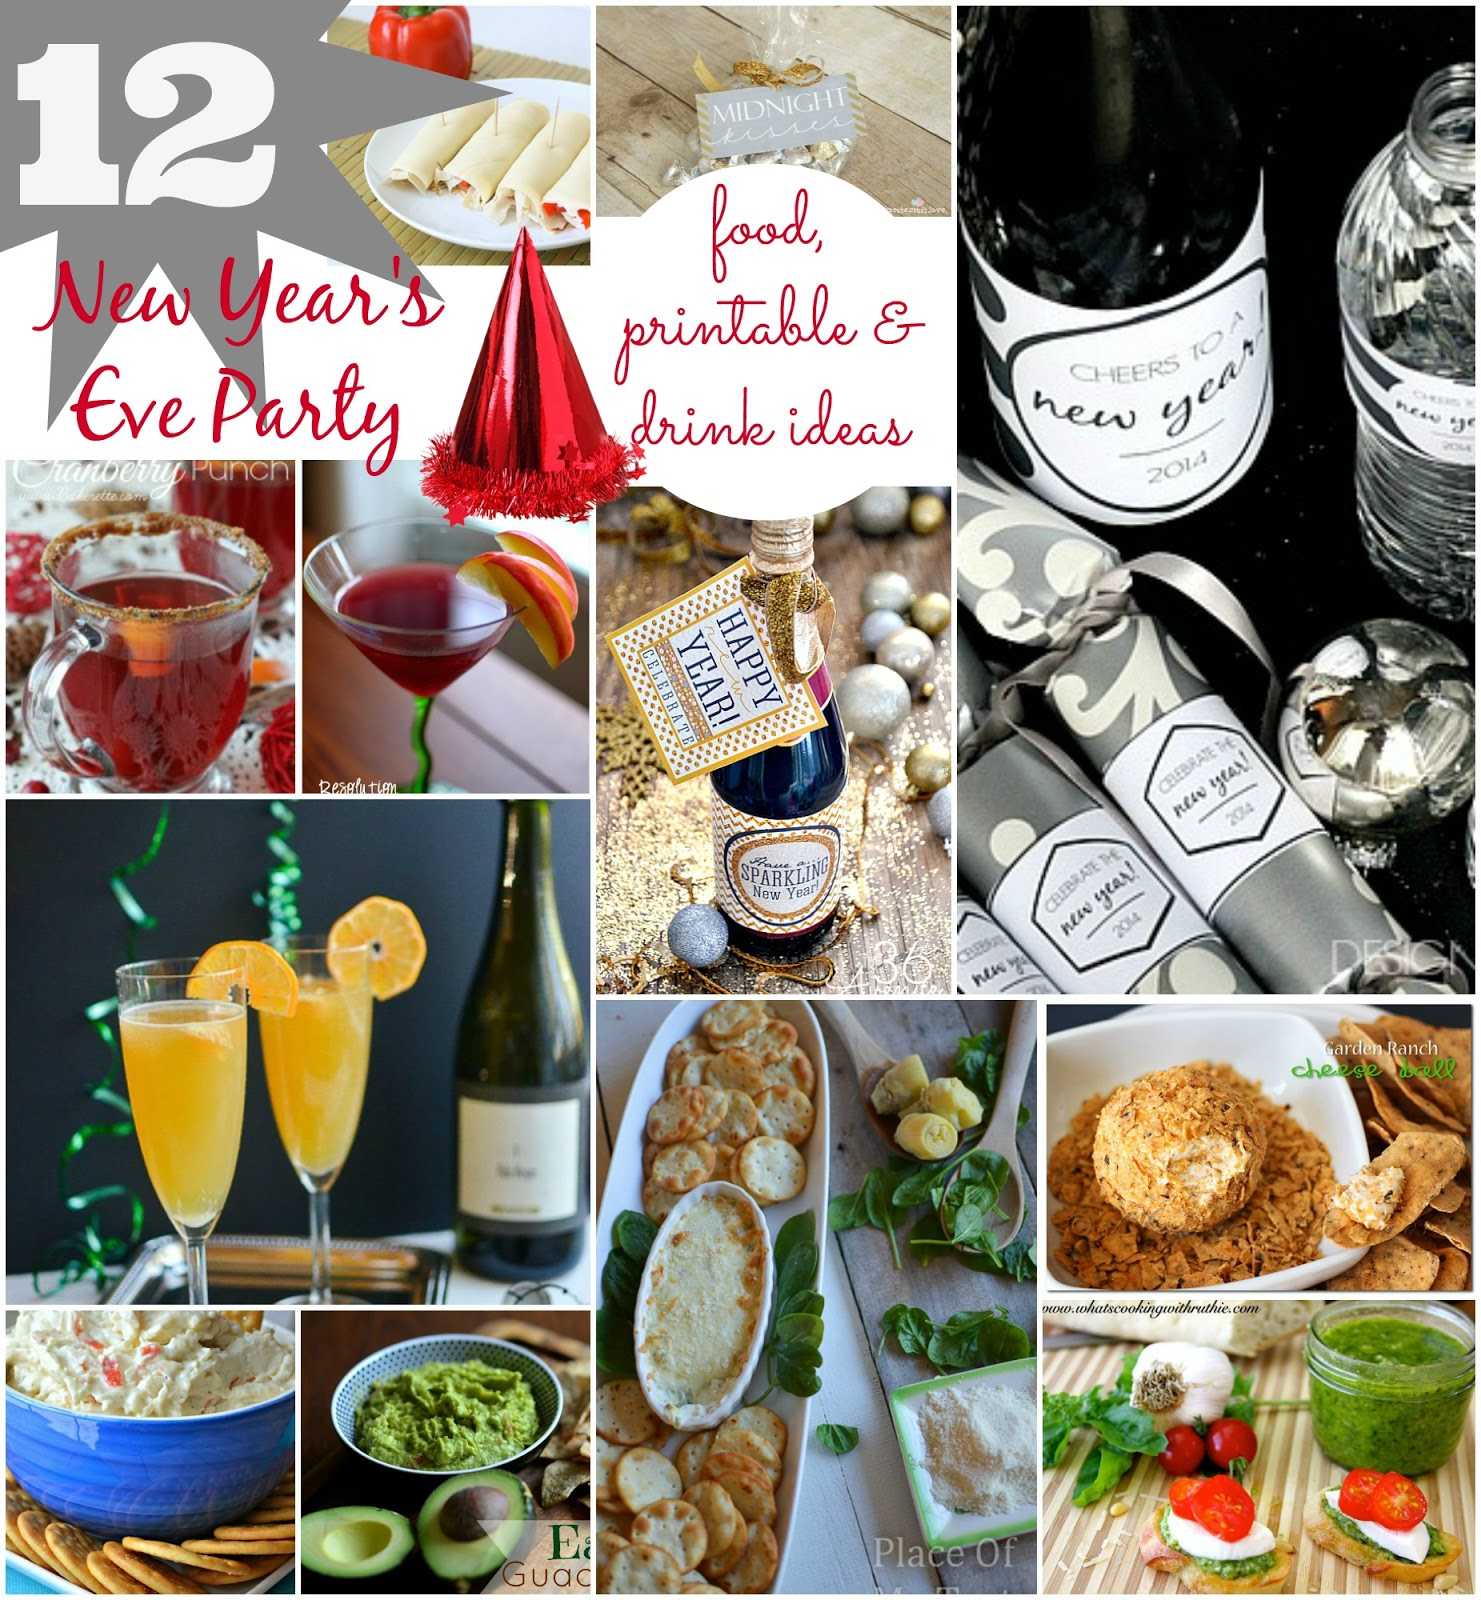 NEW YEAR' S EVE PARTY ideas { food, printable, drink ...